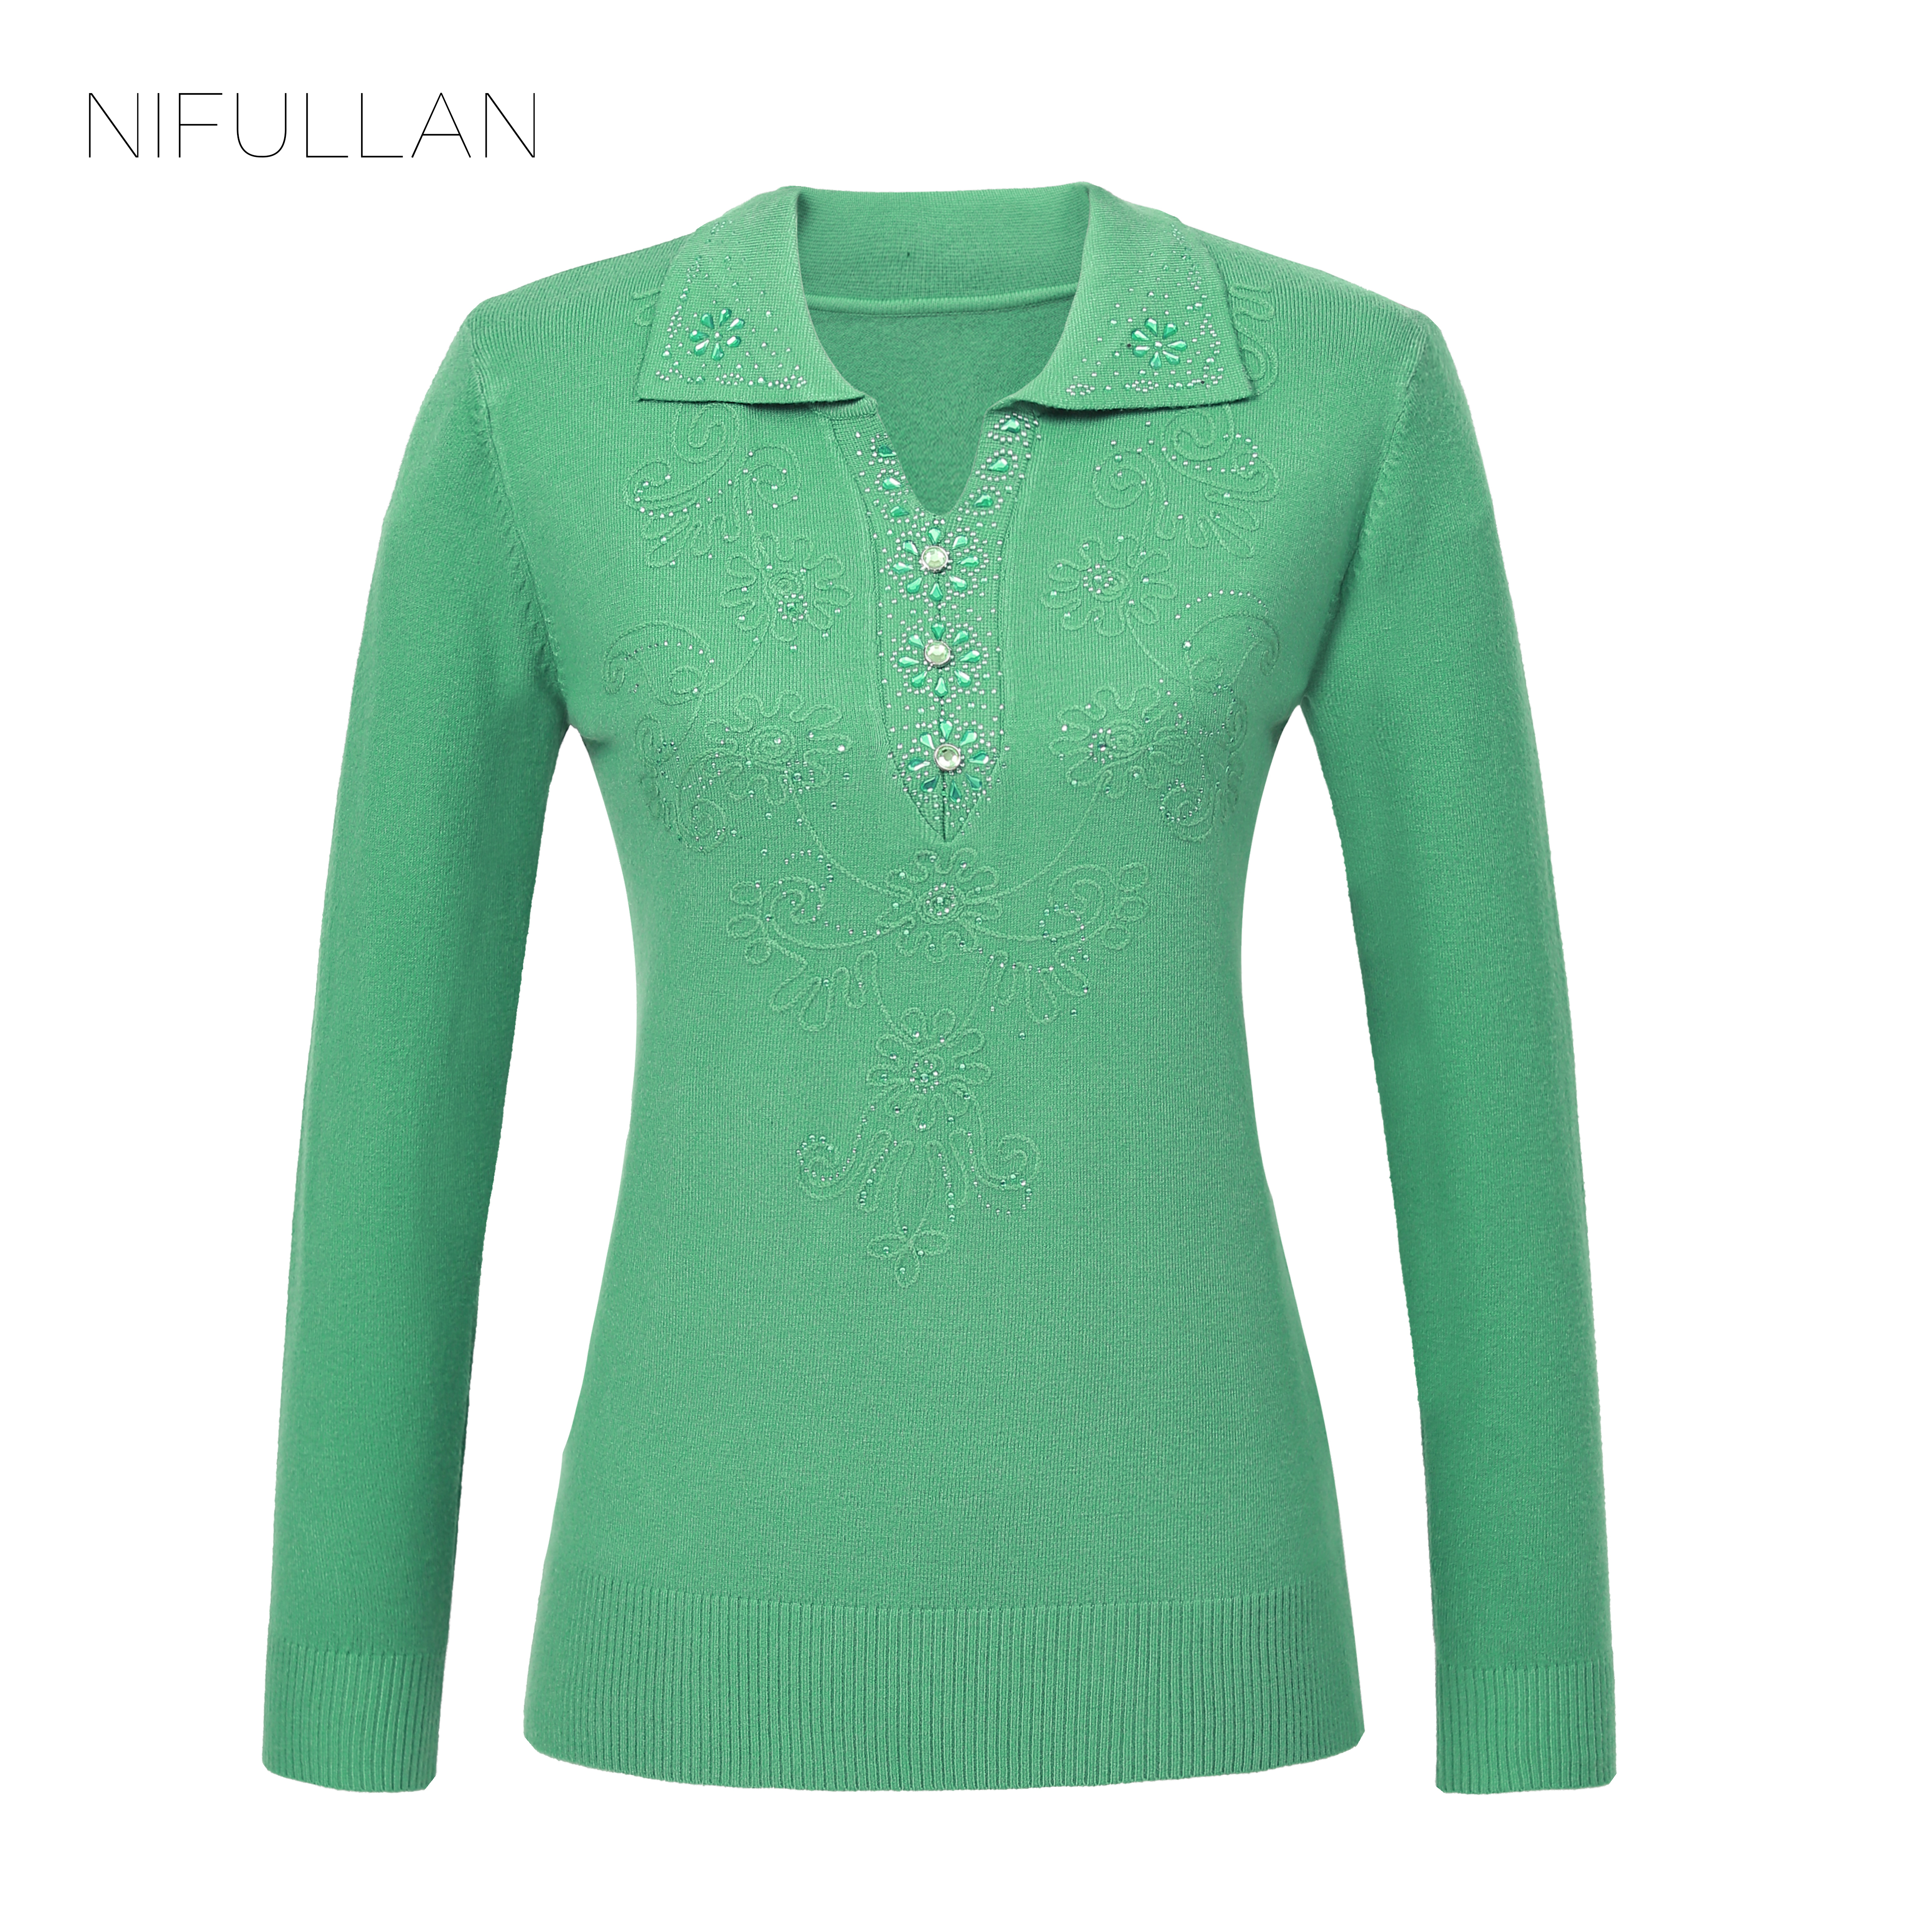 Compare Prices on Ladies Sweater- Online Shopping/Buy Low Price ...